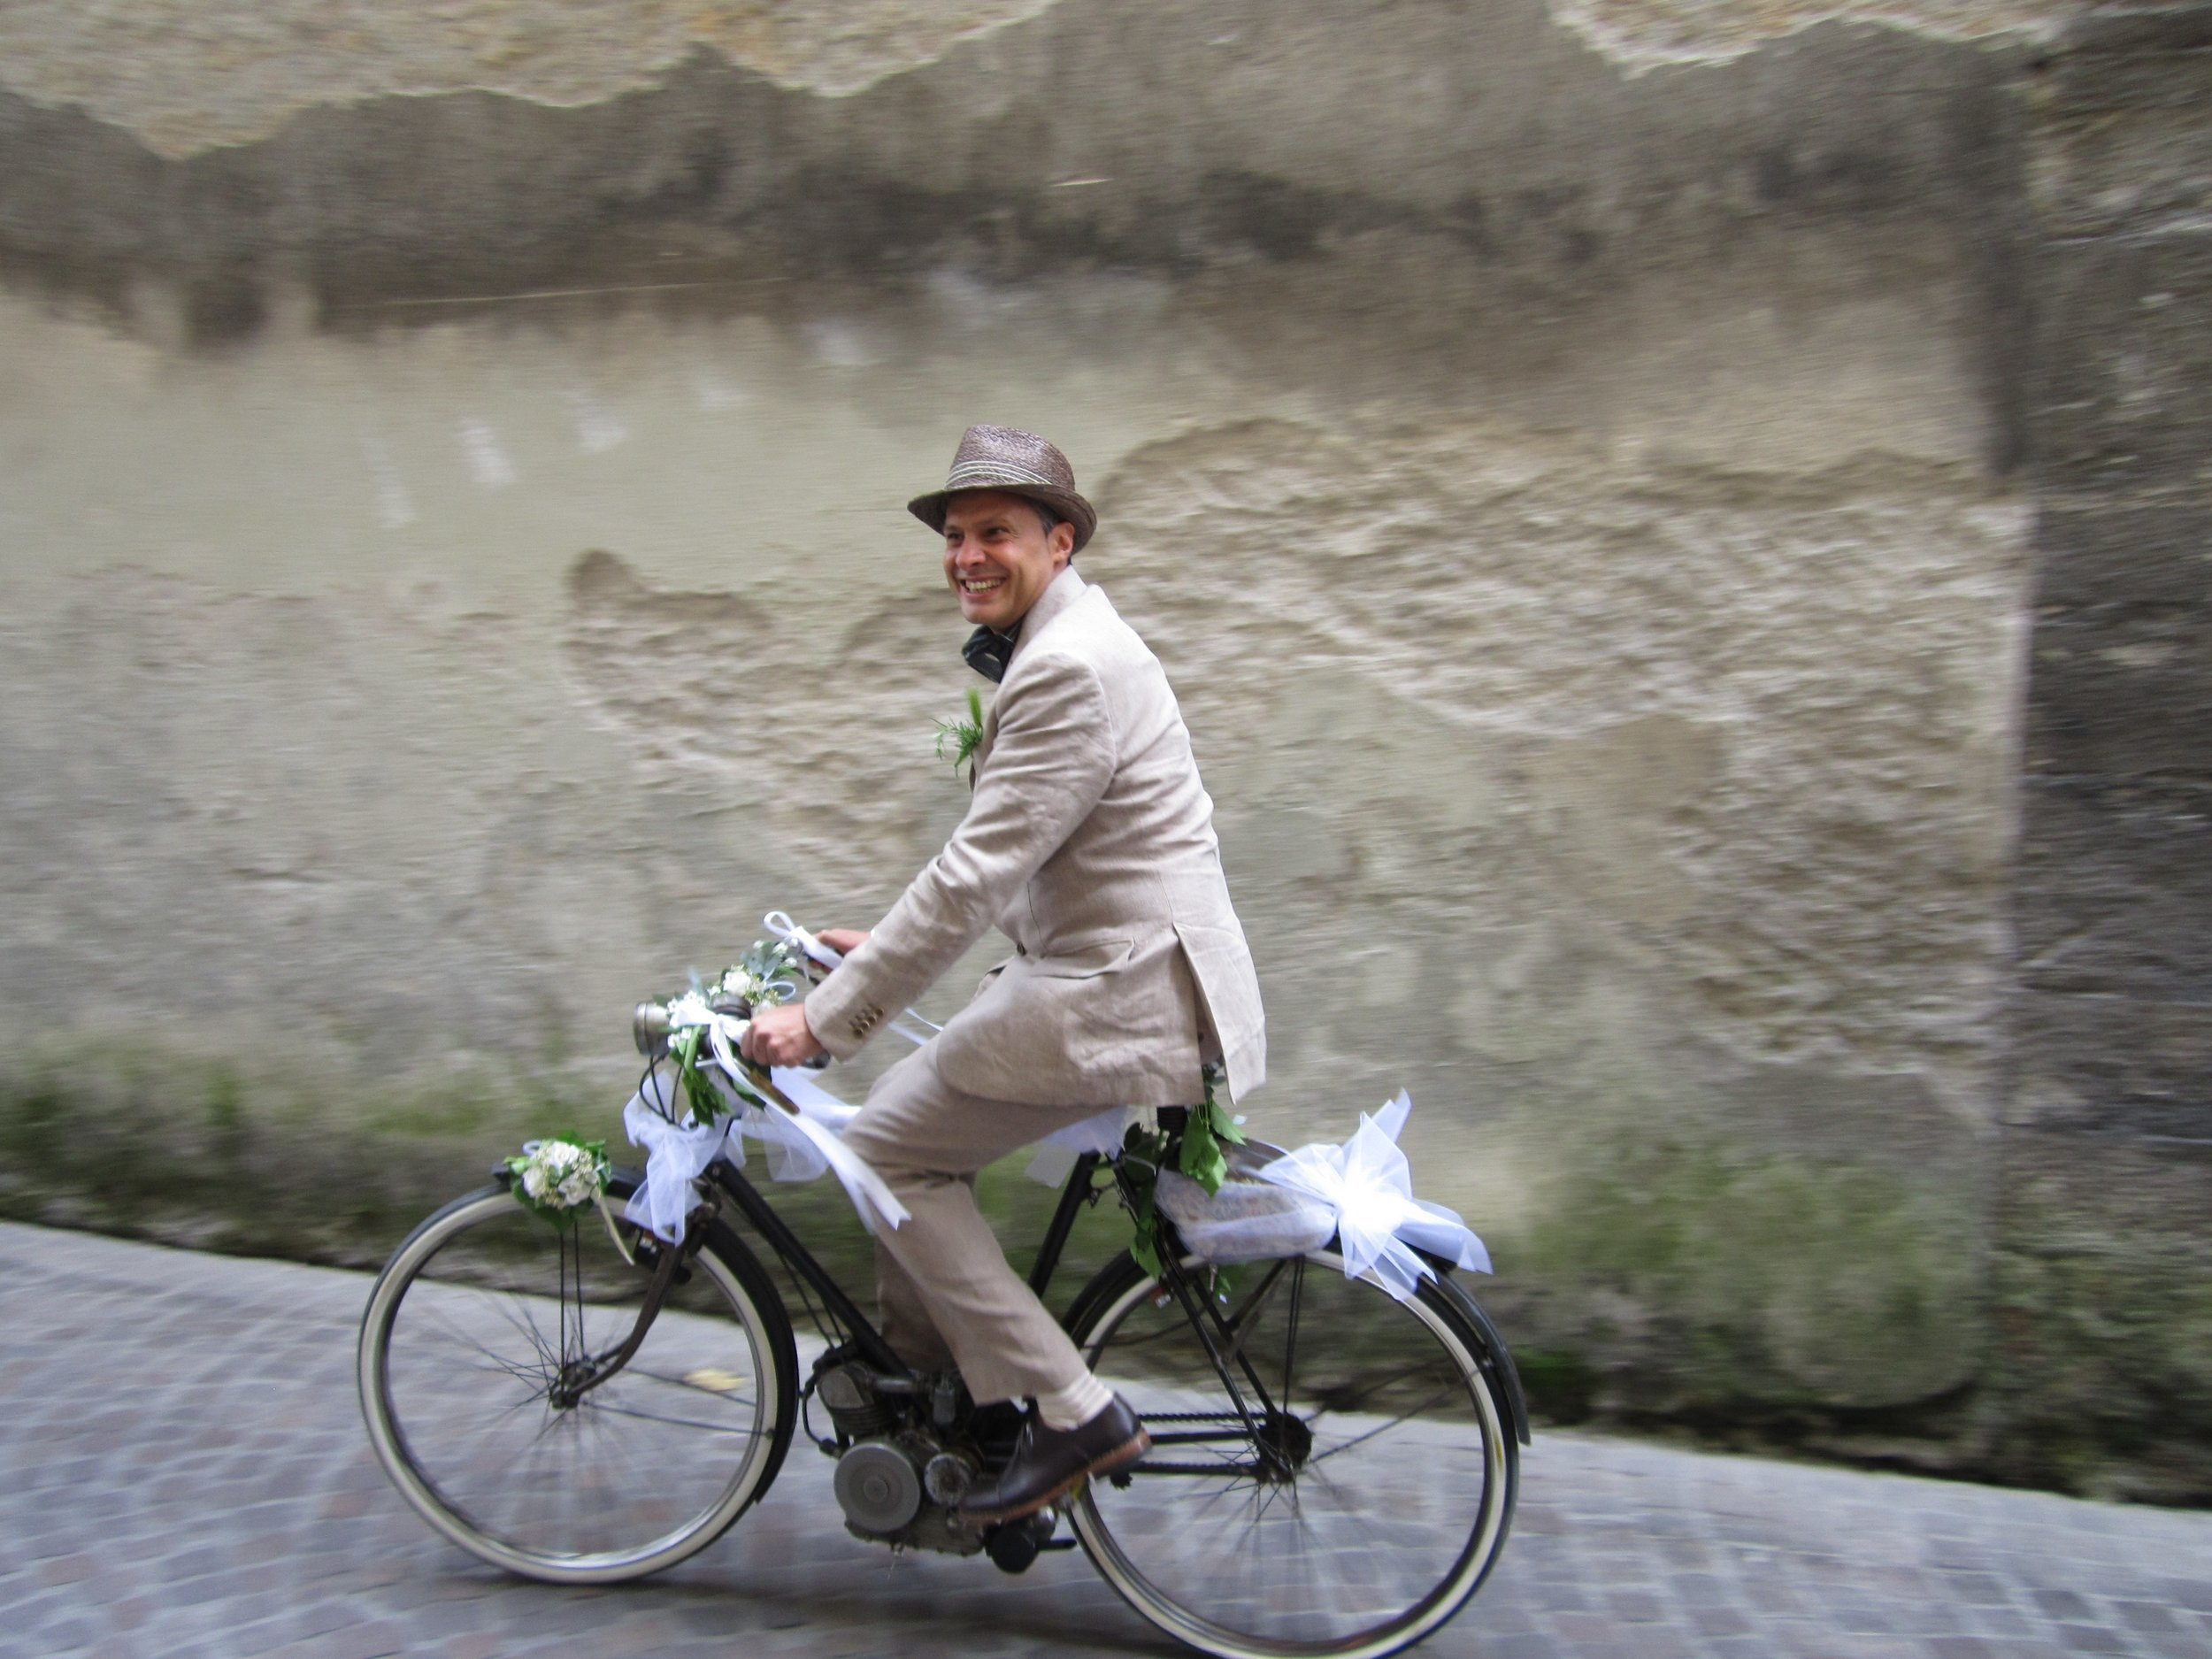 One of my all-time favorite photos - a groom on the way to his spring wedding, Lucca, 2012.